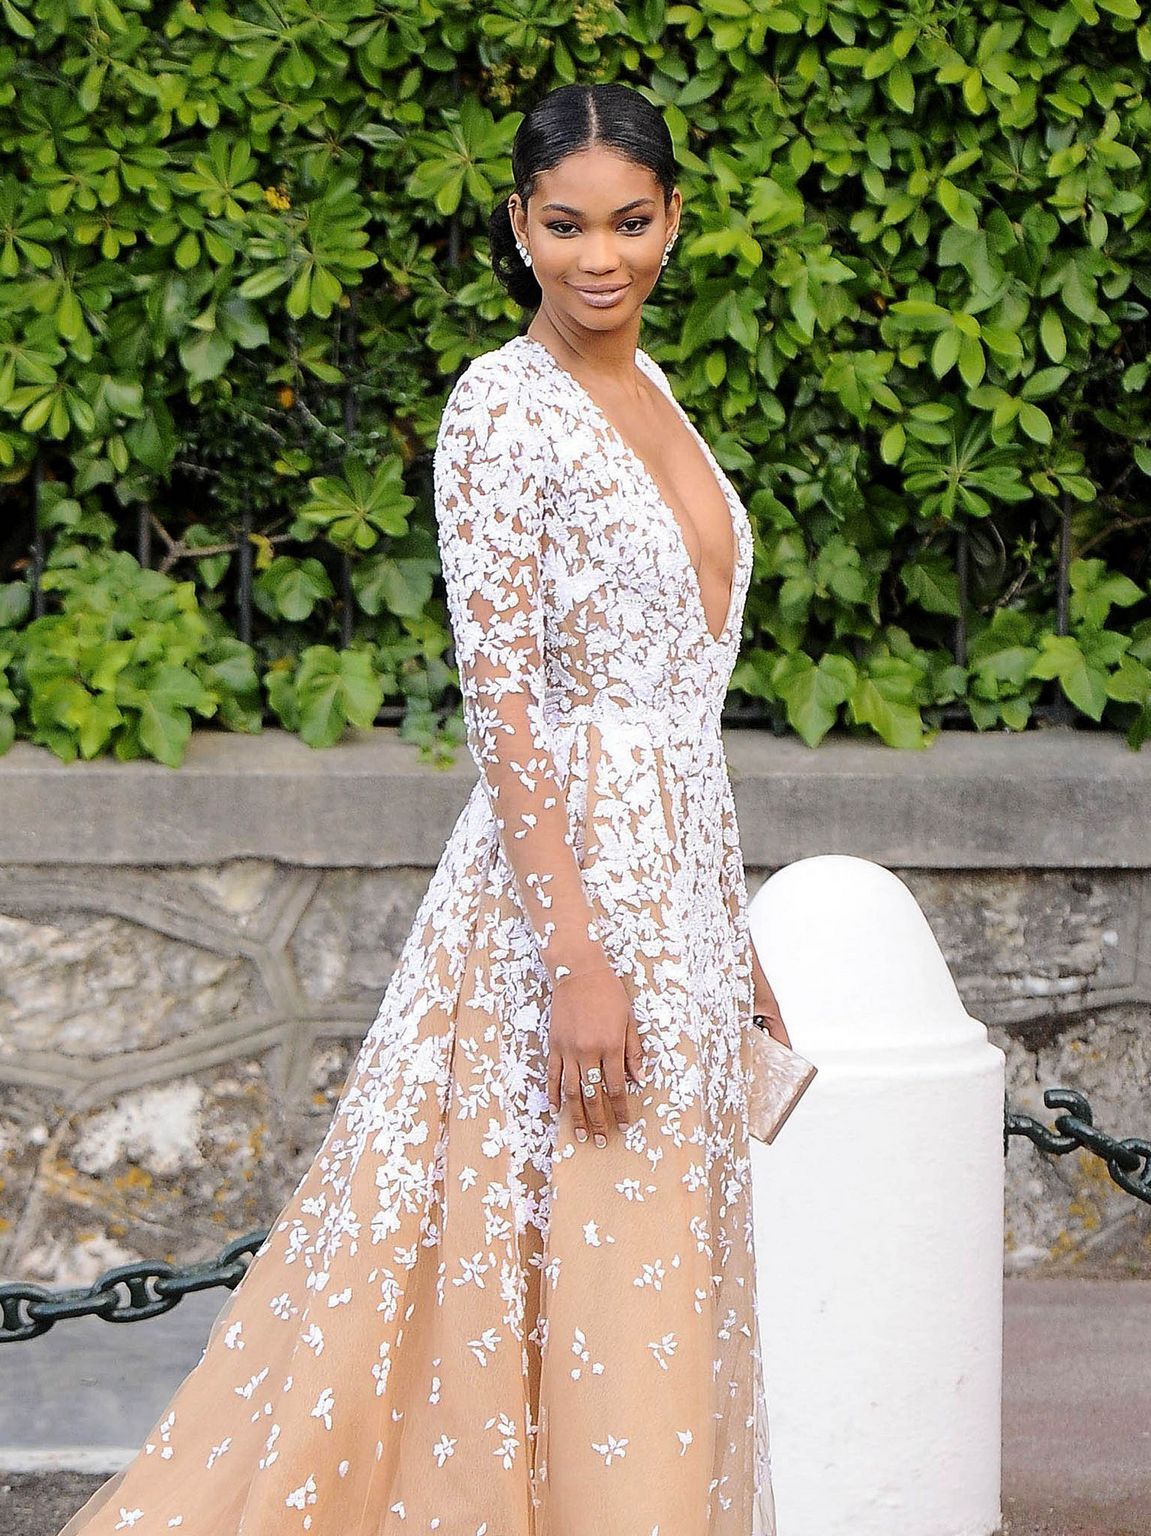 Chanel Iman at amfARs Cinema Against AIDS Gala-4